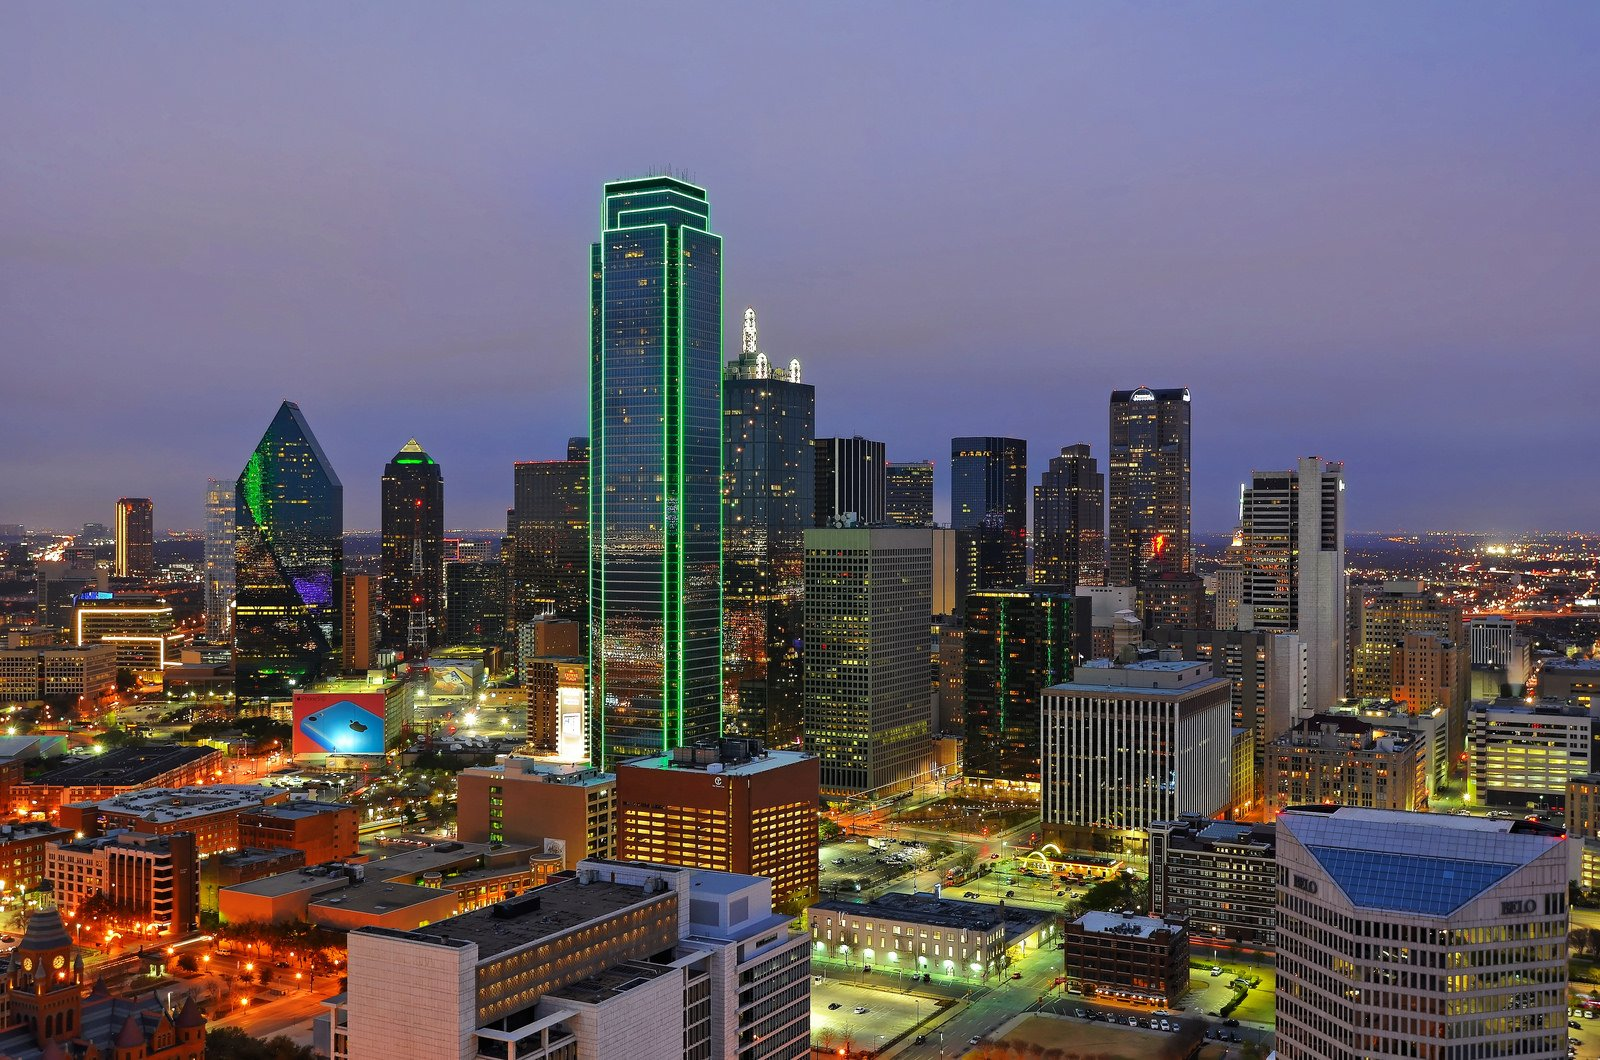 Download Downtown Dallas Wallpaper Gallery